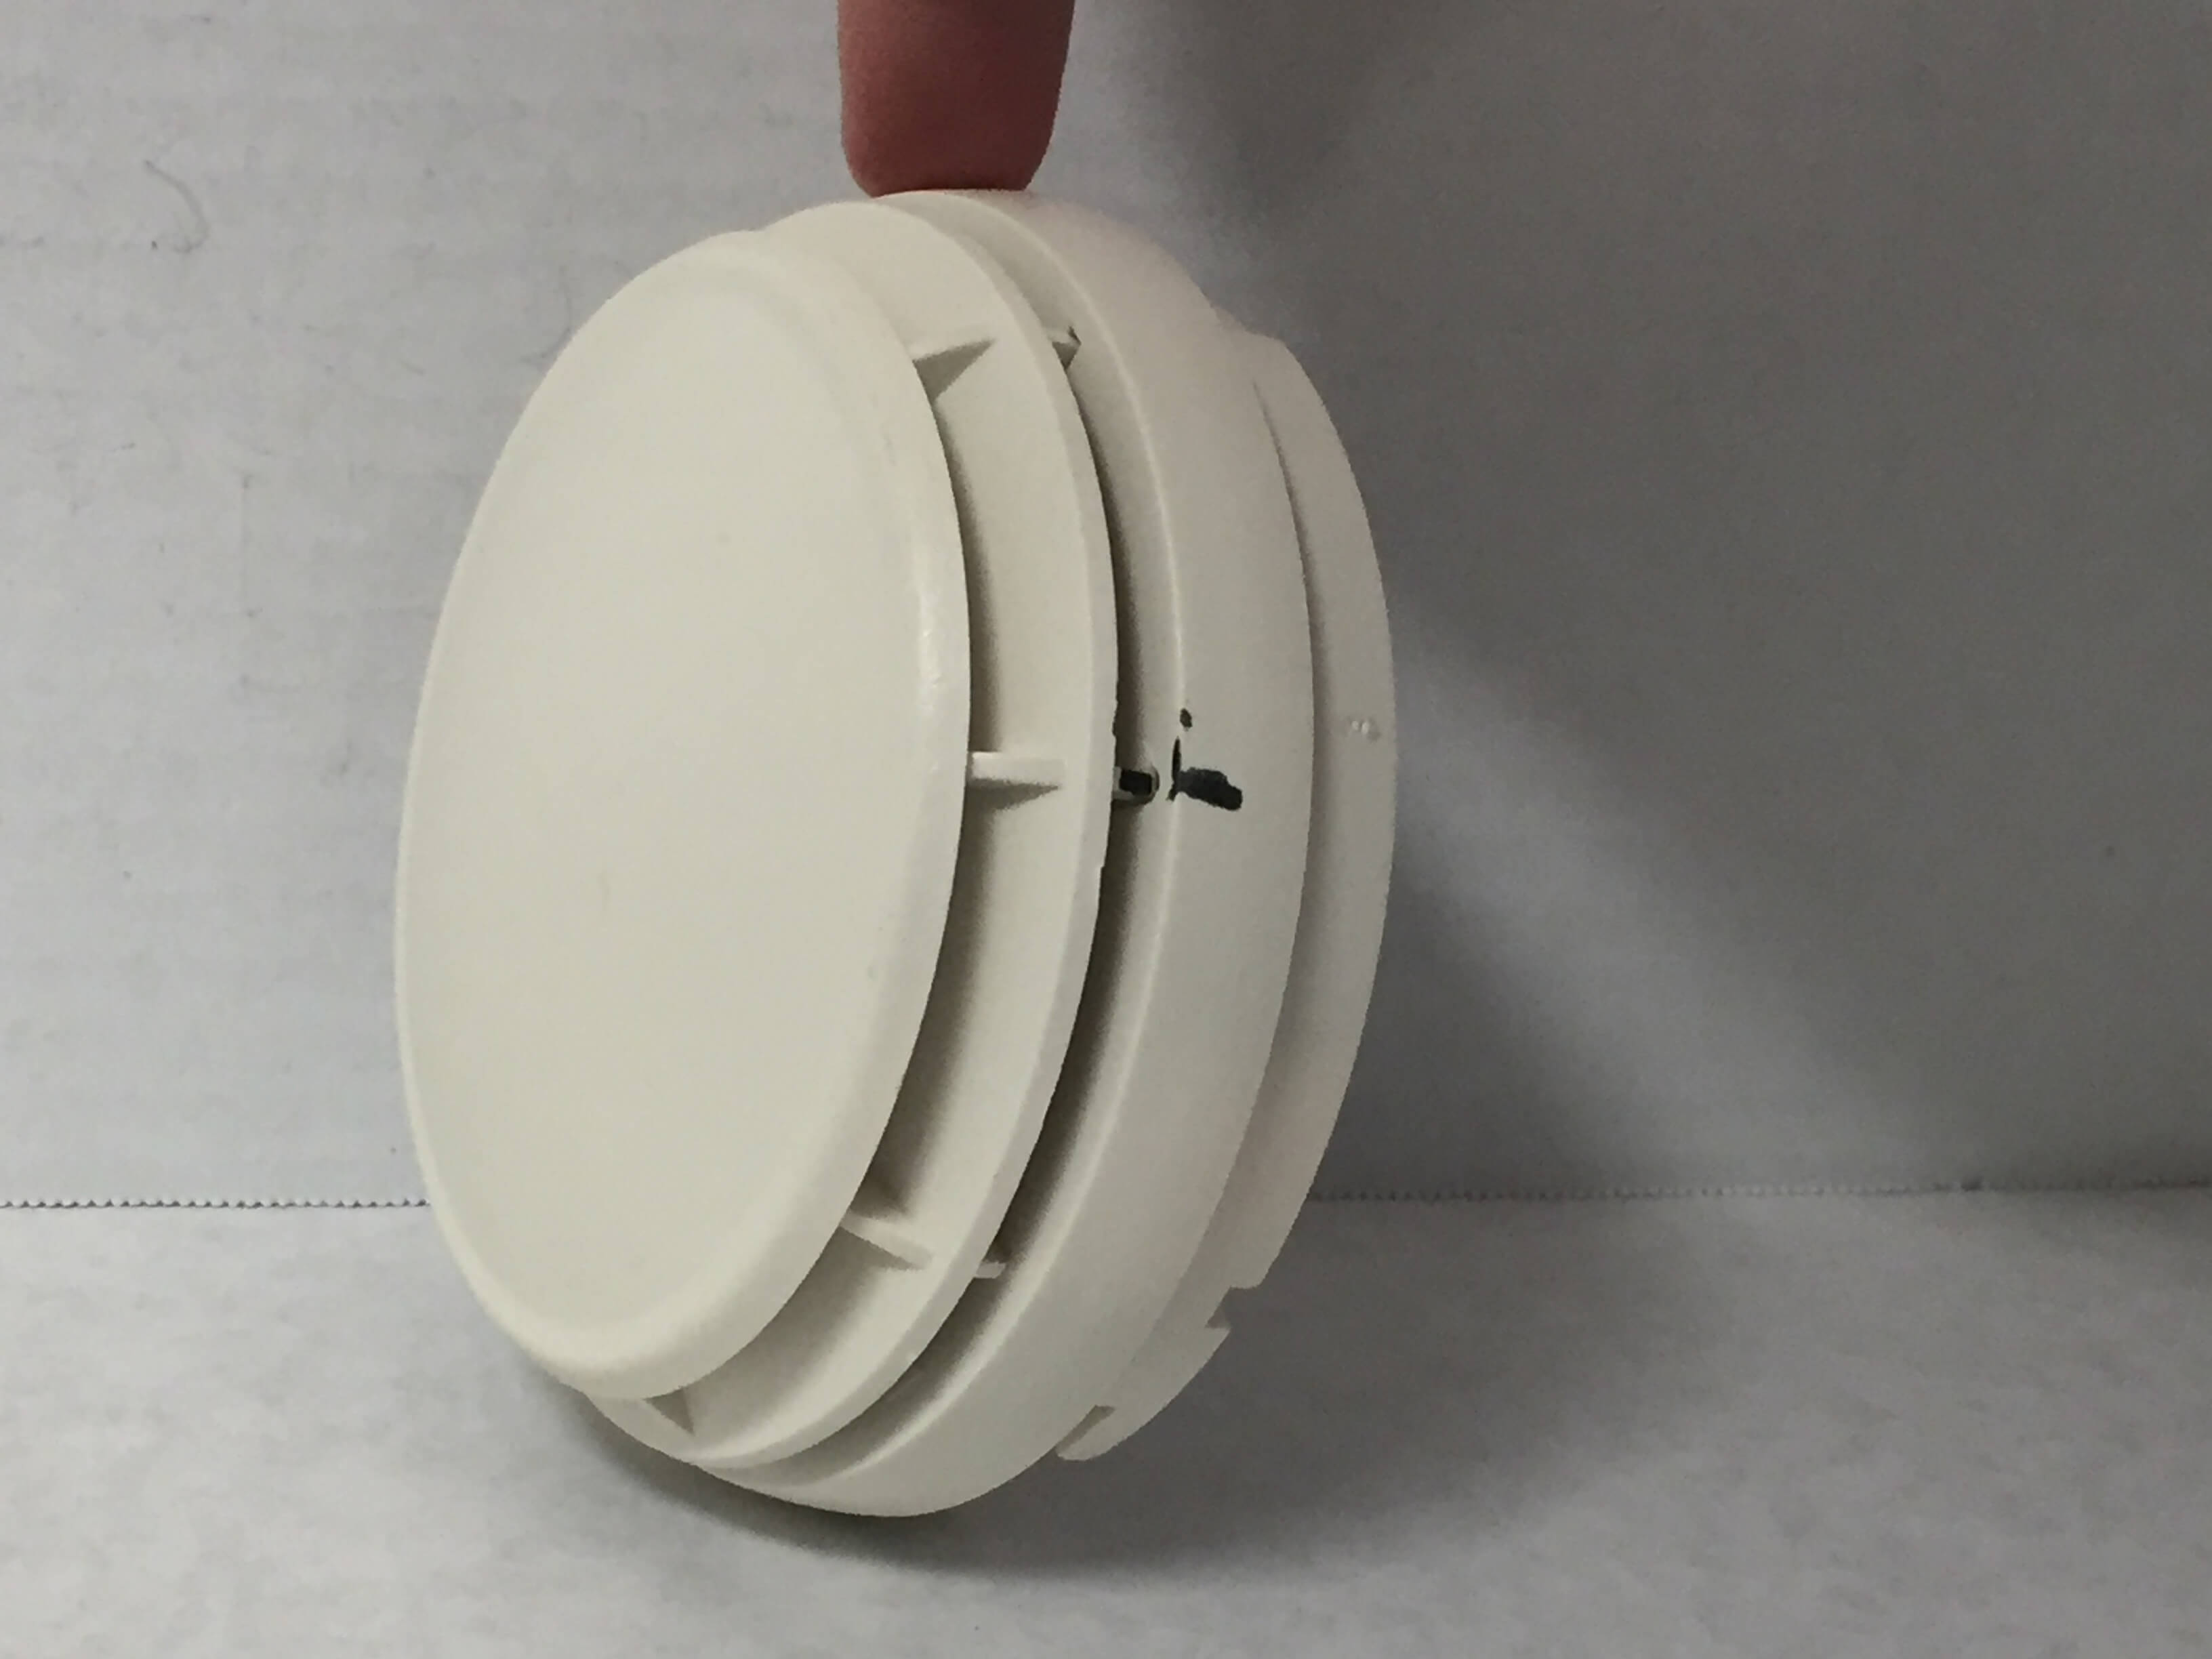 4 wire photoelectric smoke detector cat 6 diagram simplex 4098 9714 firealarms tv jjinc24 u8ol0 39s fire